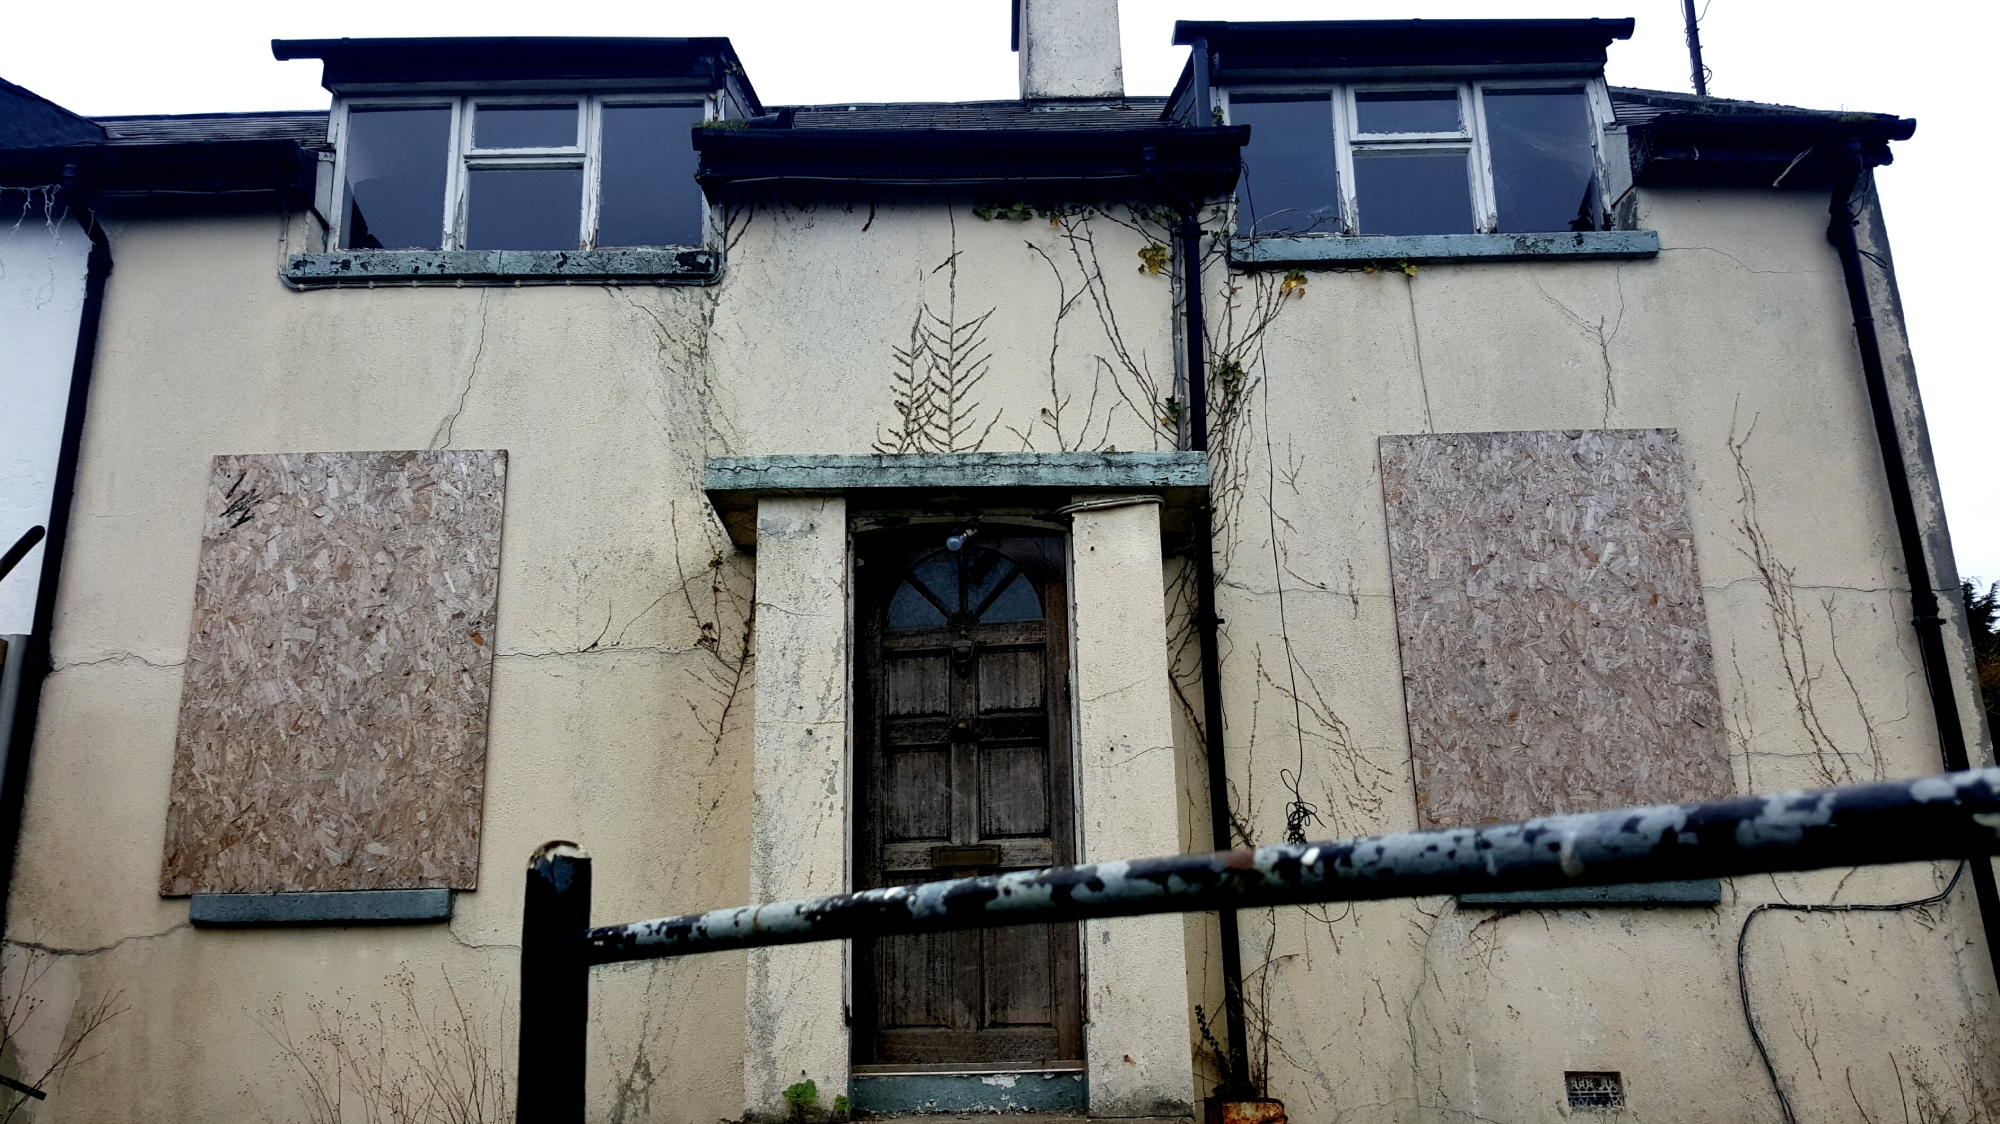 Abandoned House, Enniskerry (Ireland) - Derelict World Photography - Lainey Quinn